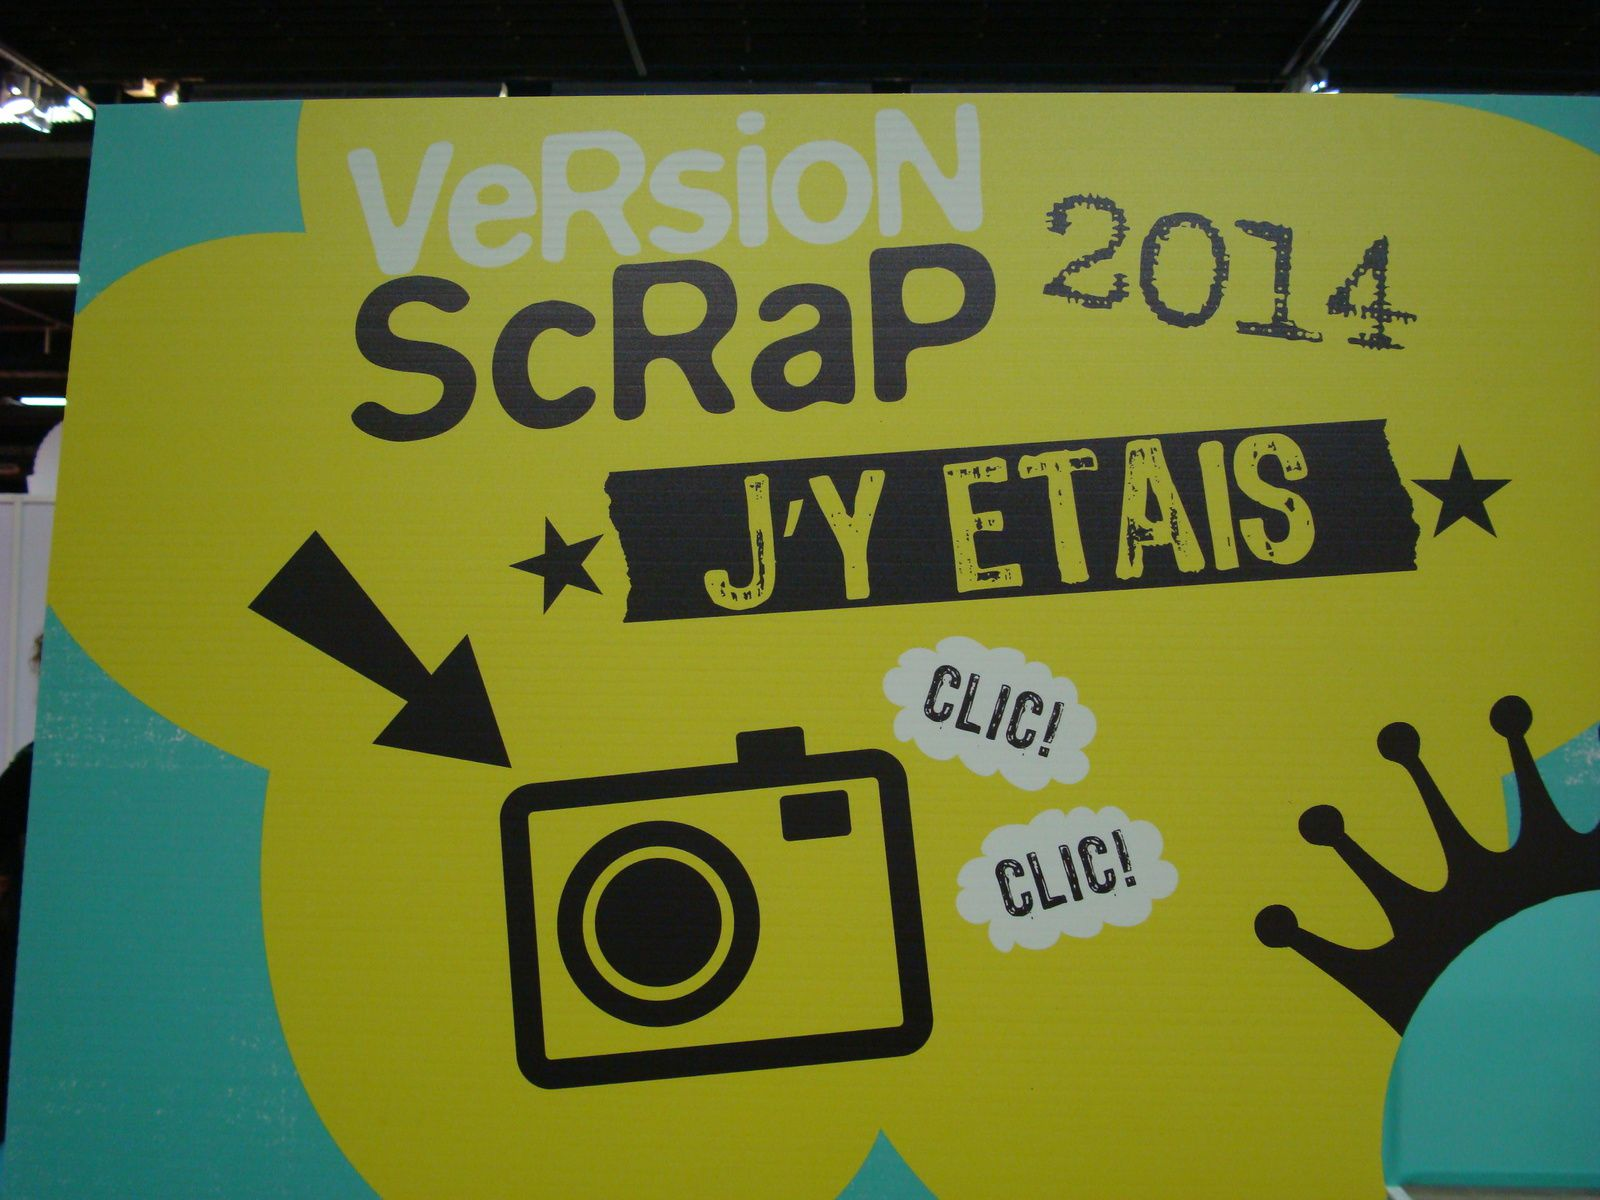 Version Scrap Paris 2014